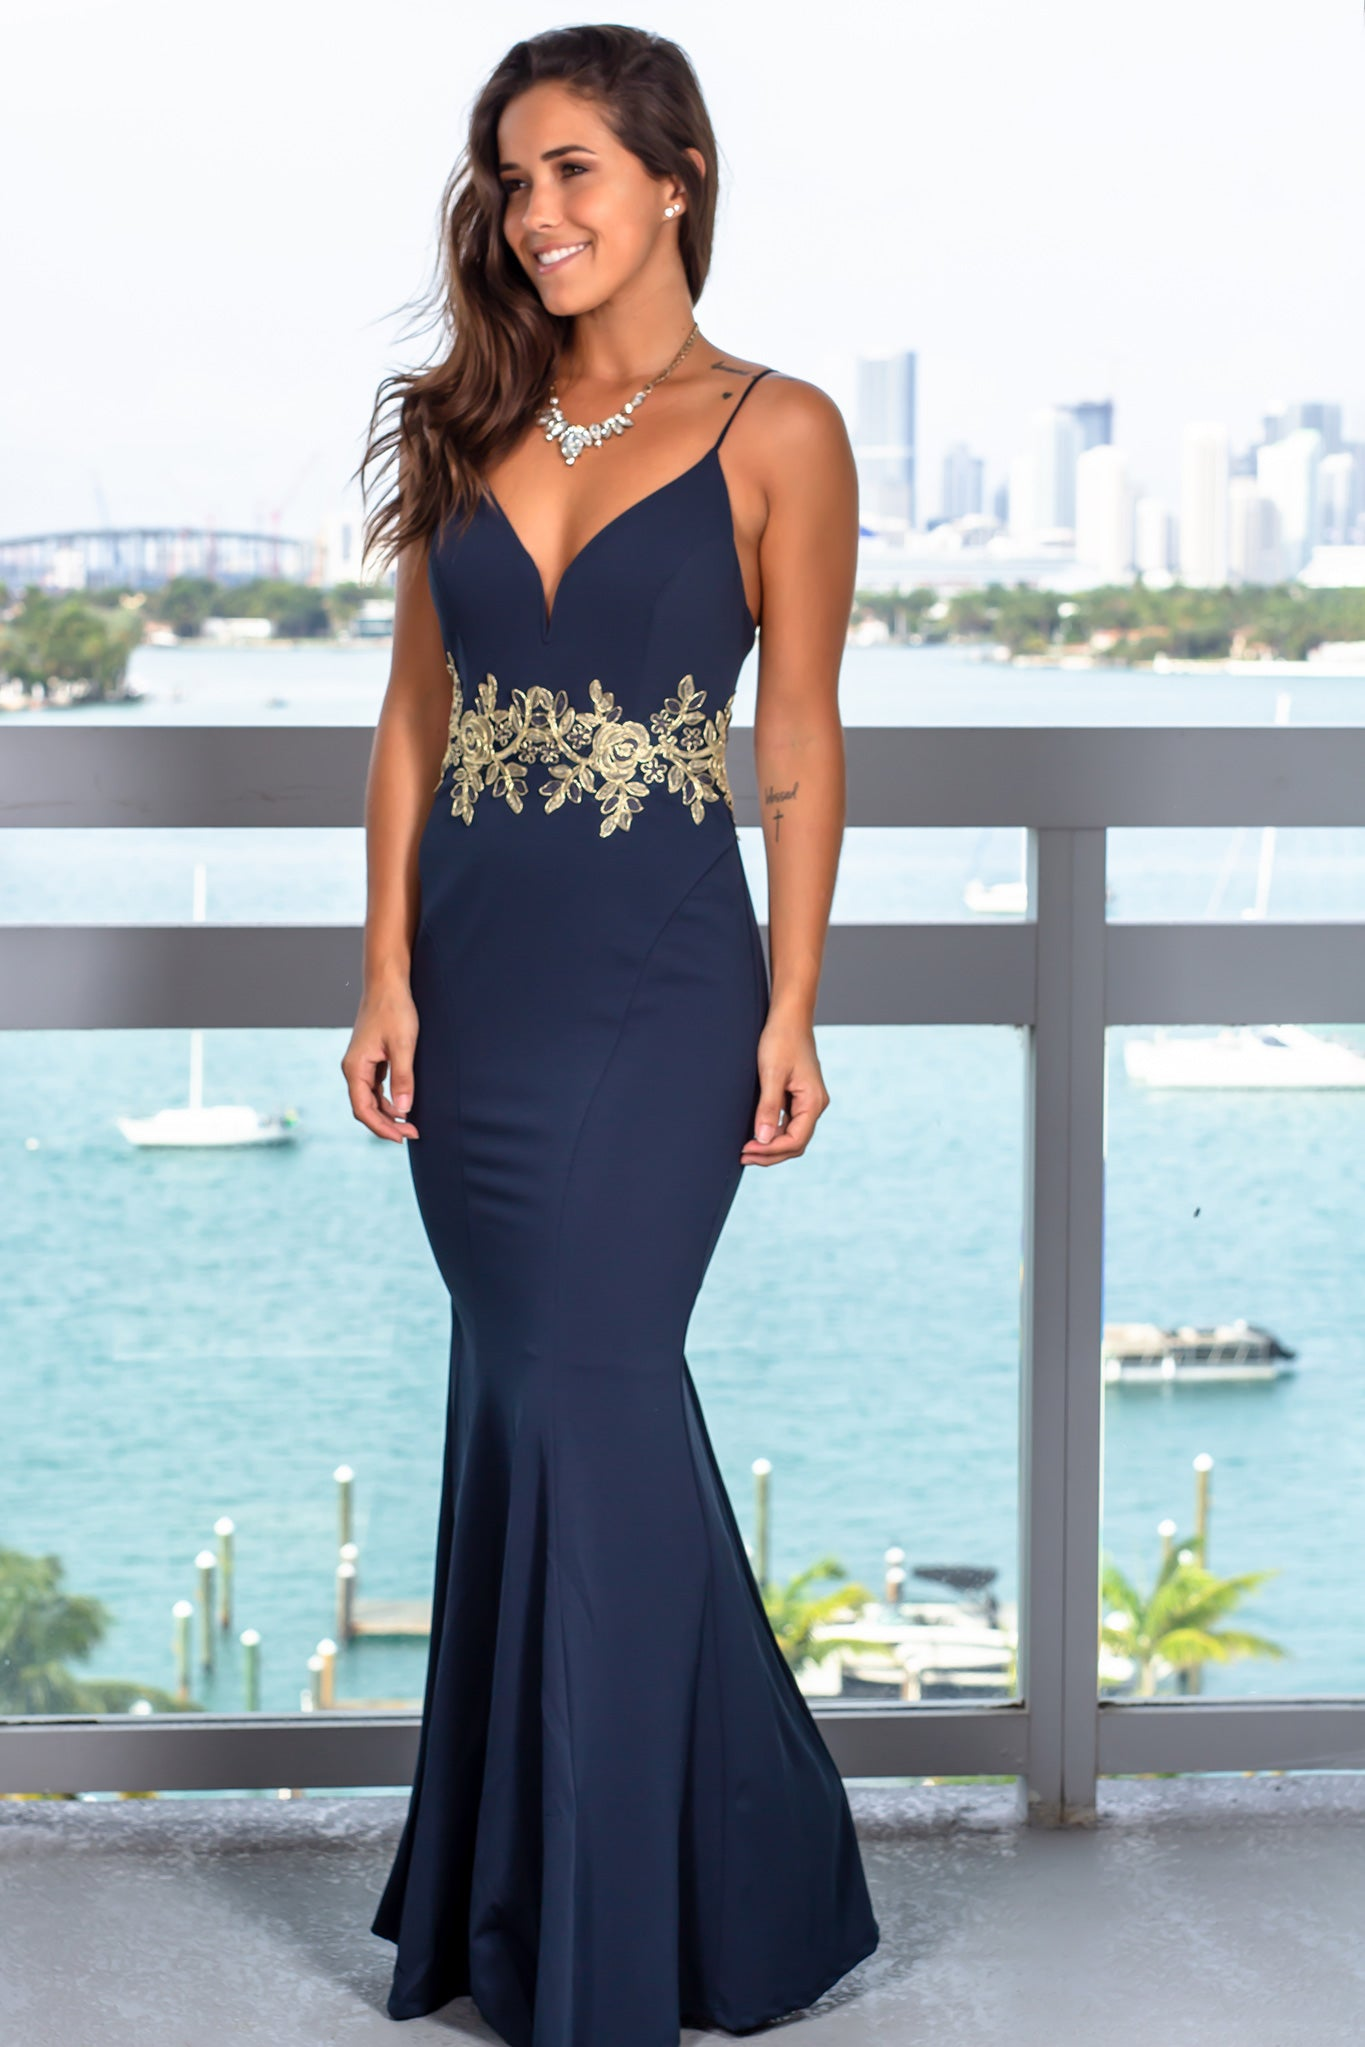 Dark Teal Maxi Dress with Gold Detail